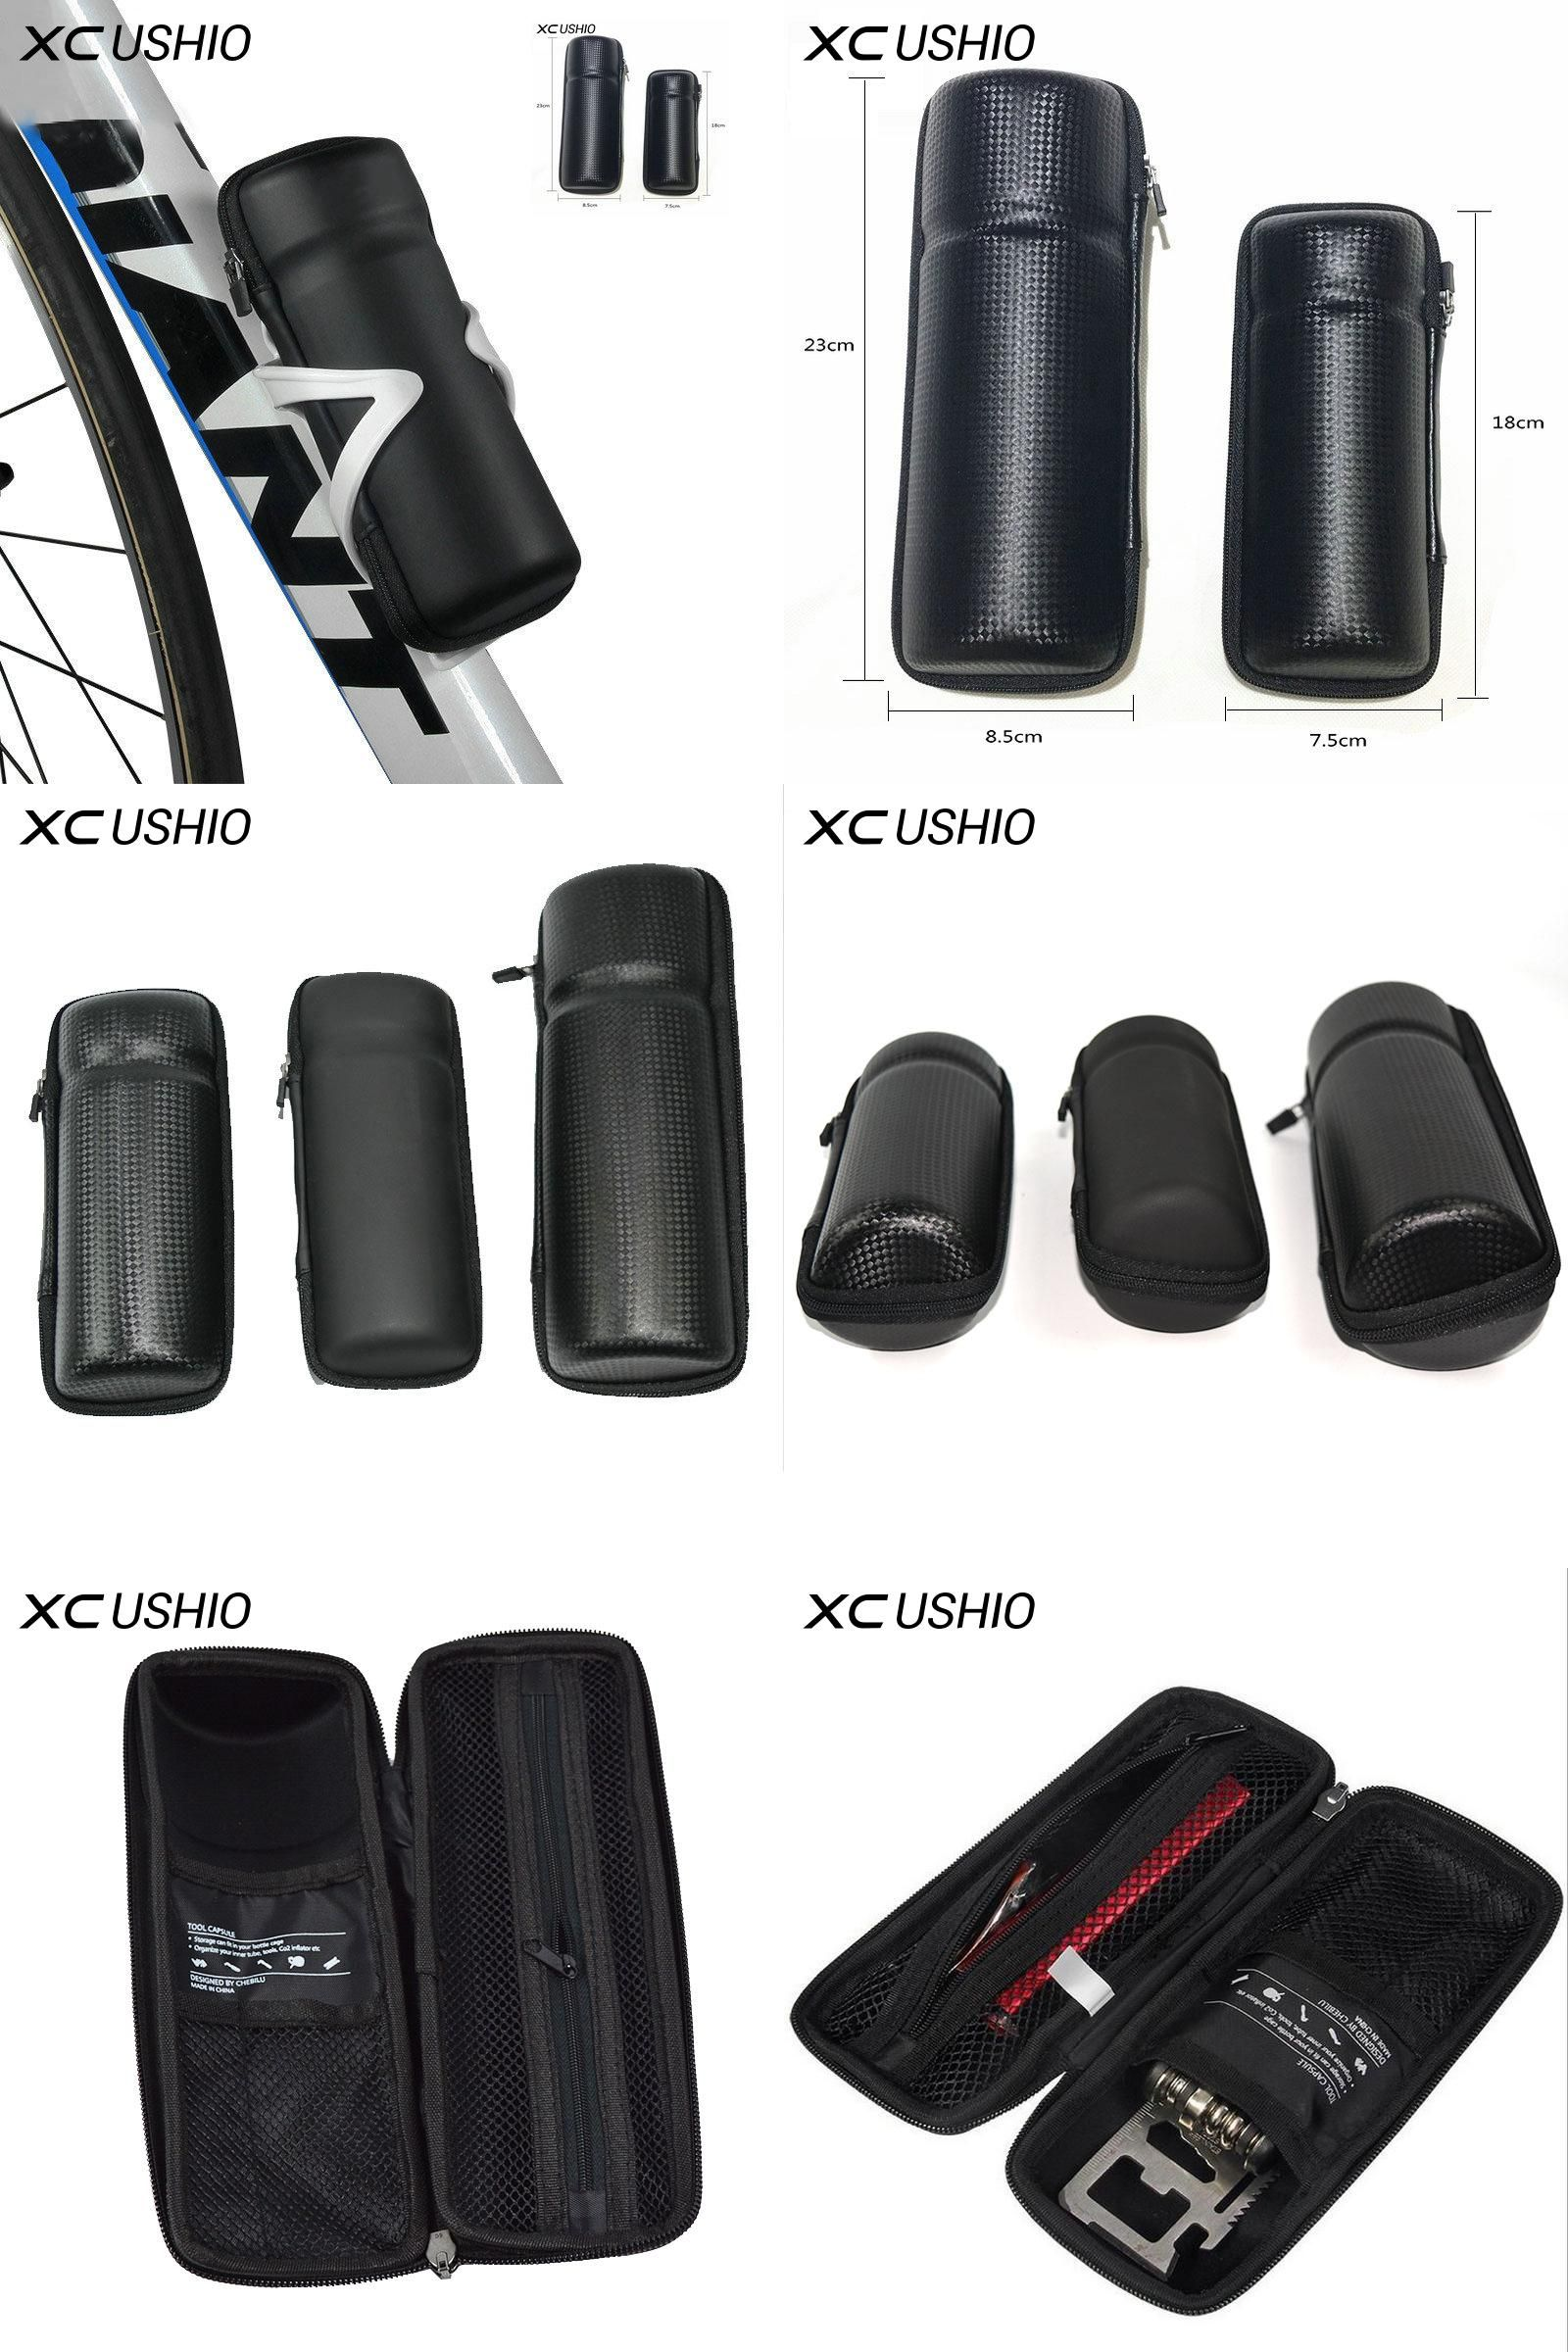 Cycling Tool Capsule Boxes Apply Bottle Cage Can Store Keys Repair Tools Kit Set Case Bike Storage Box Bicycle Tool Bag